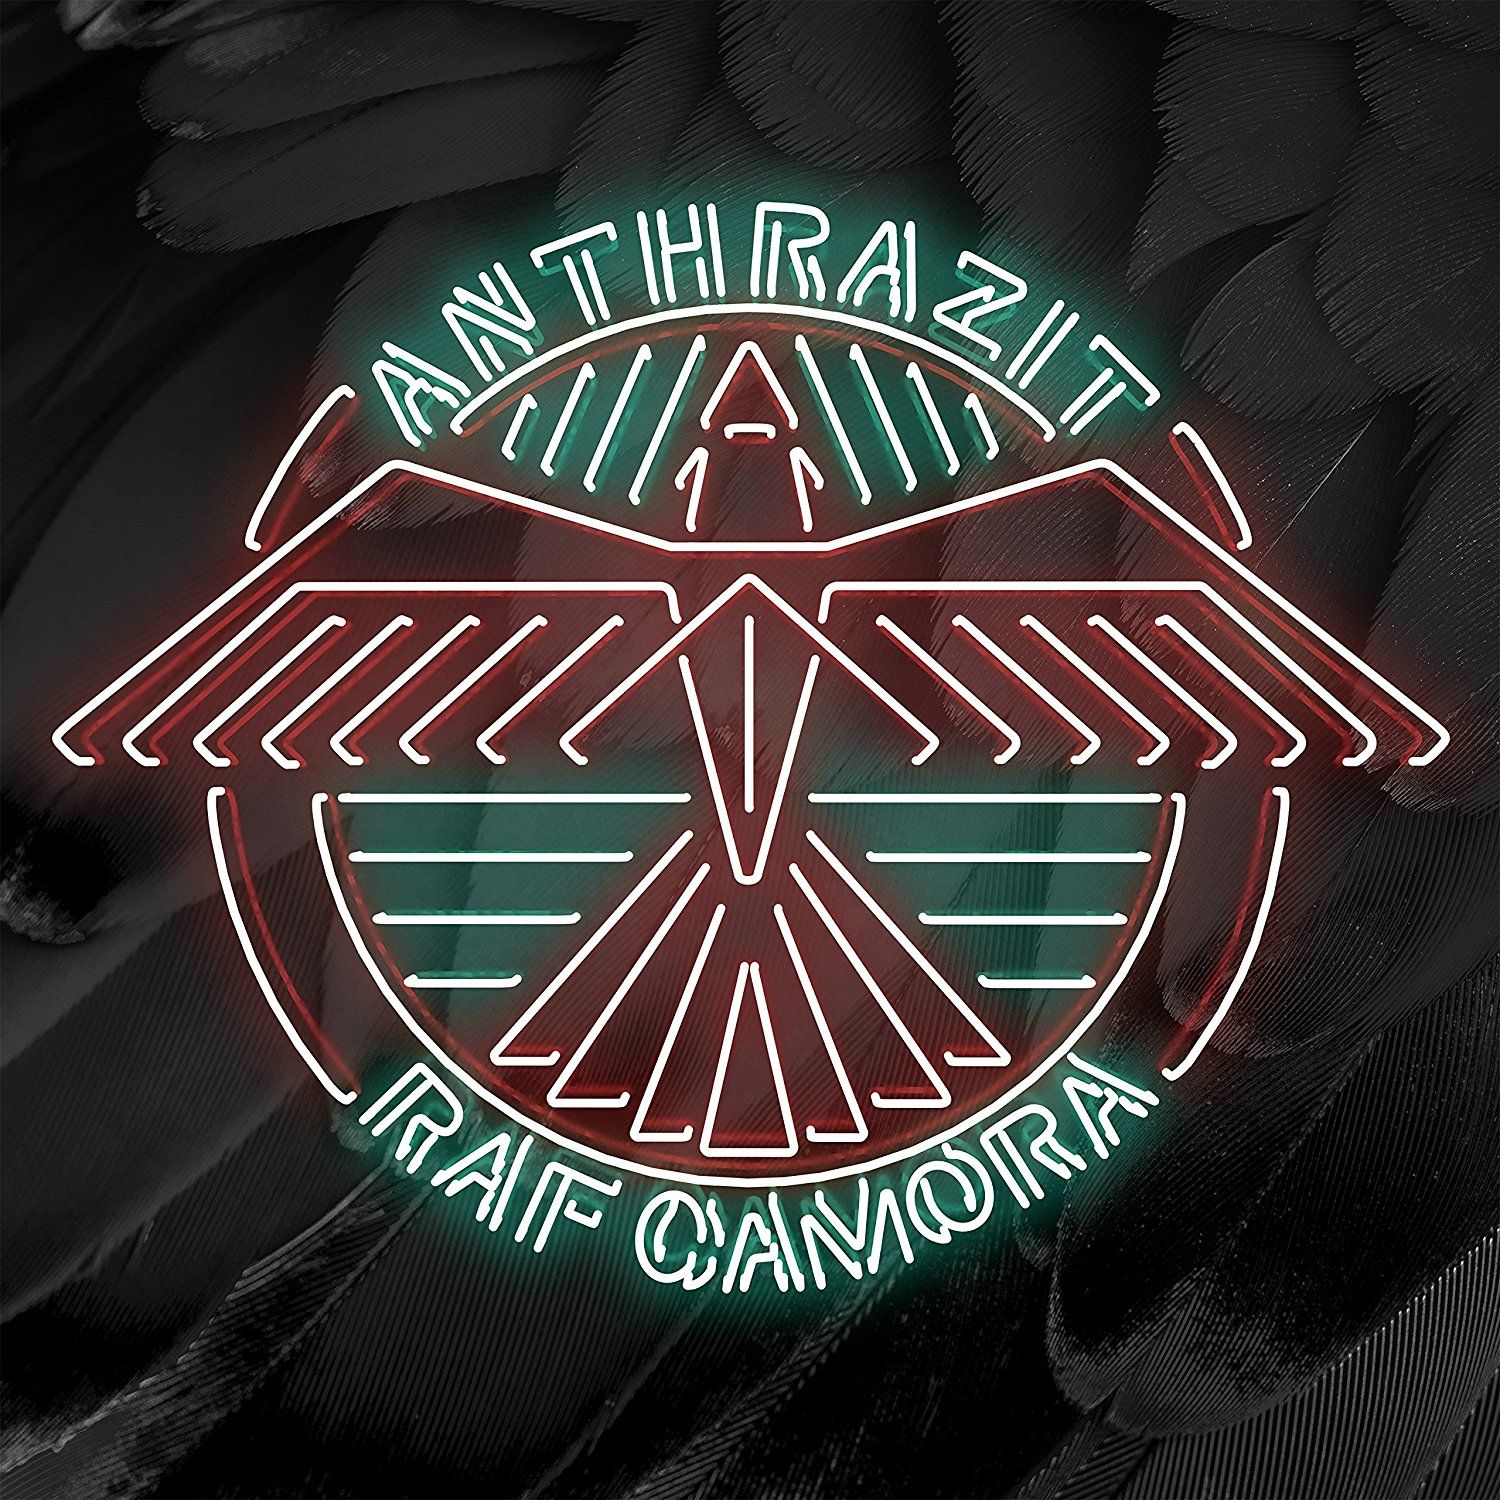 RAF Camora - Anthrazit album cover